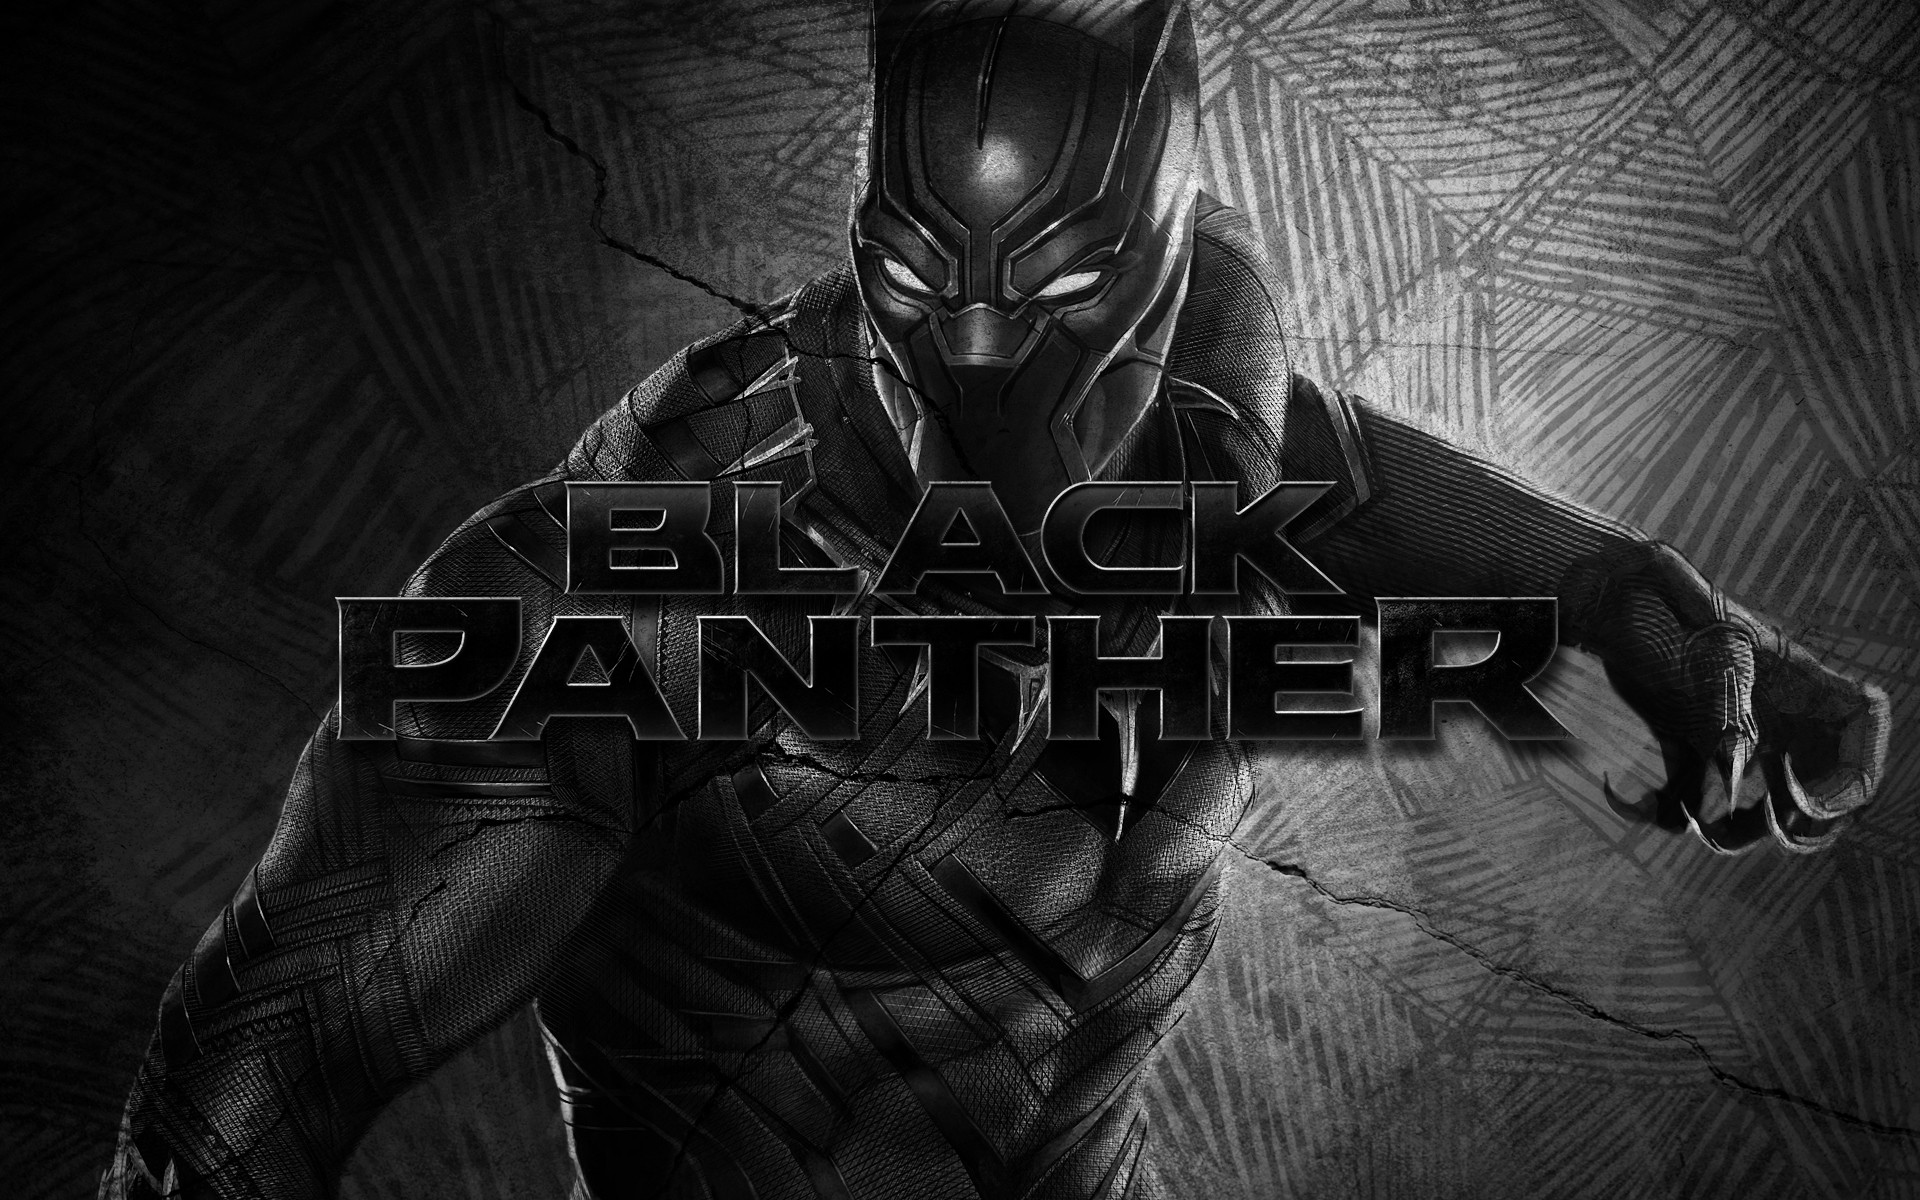 film super hero terbaik 2018, film black panther